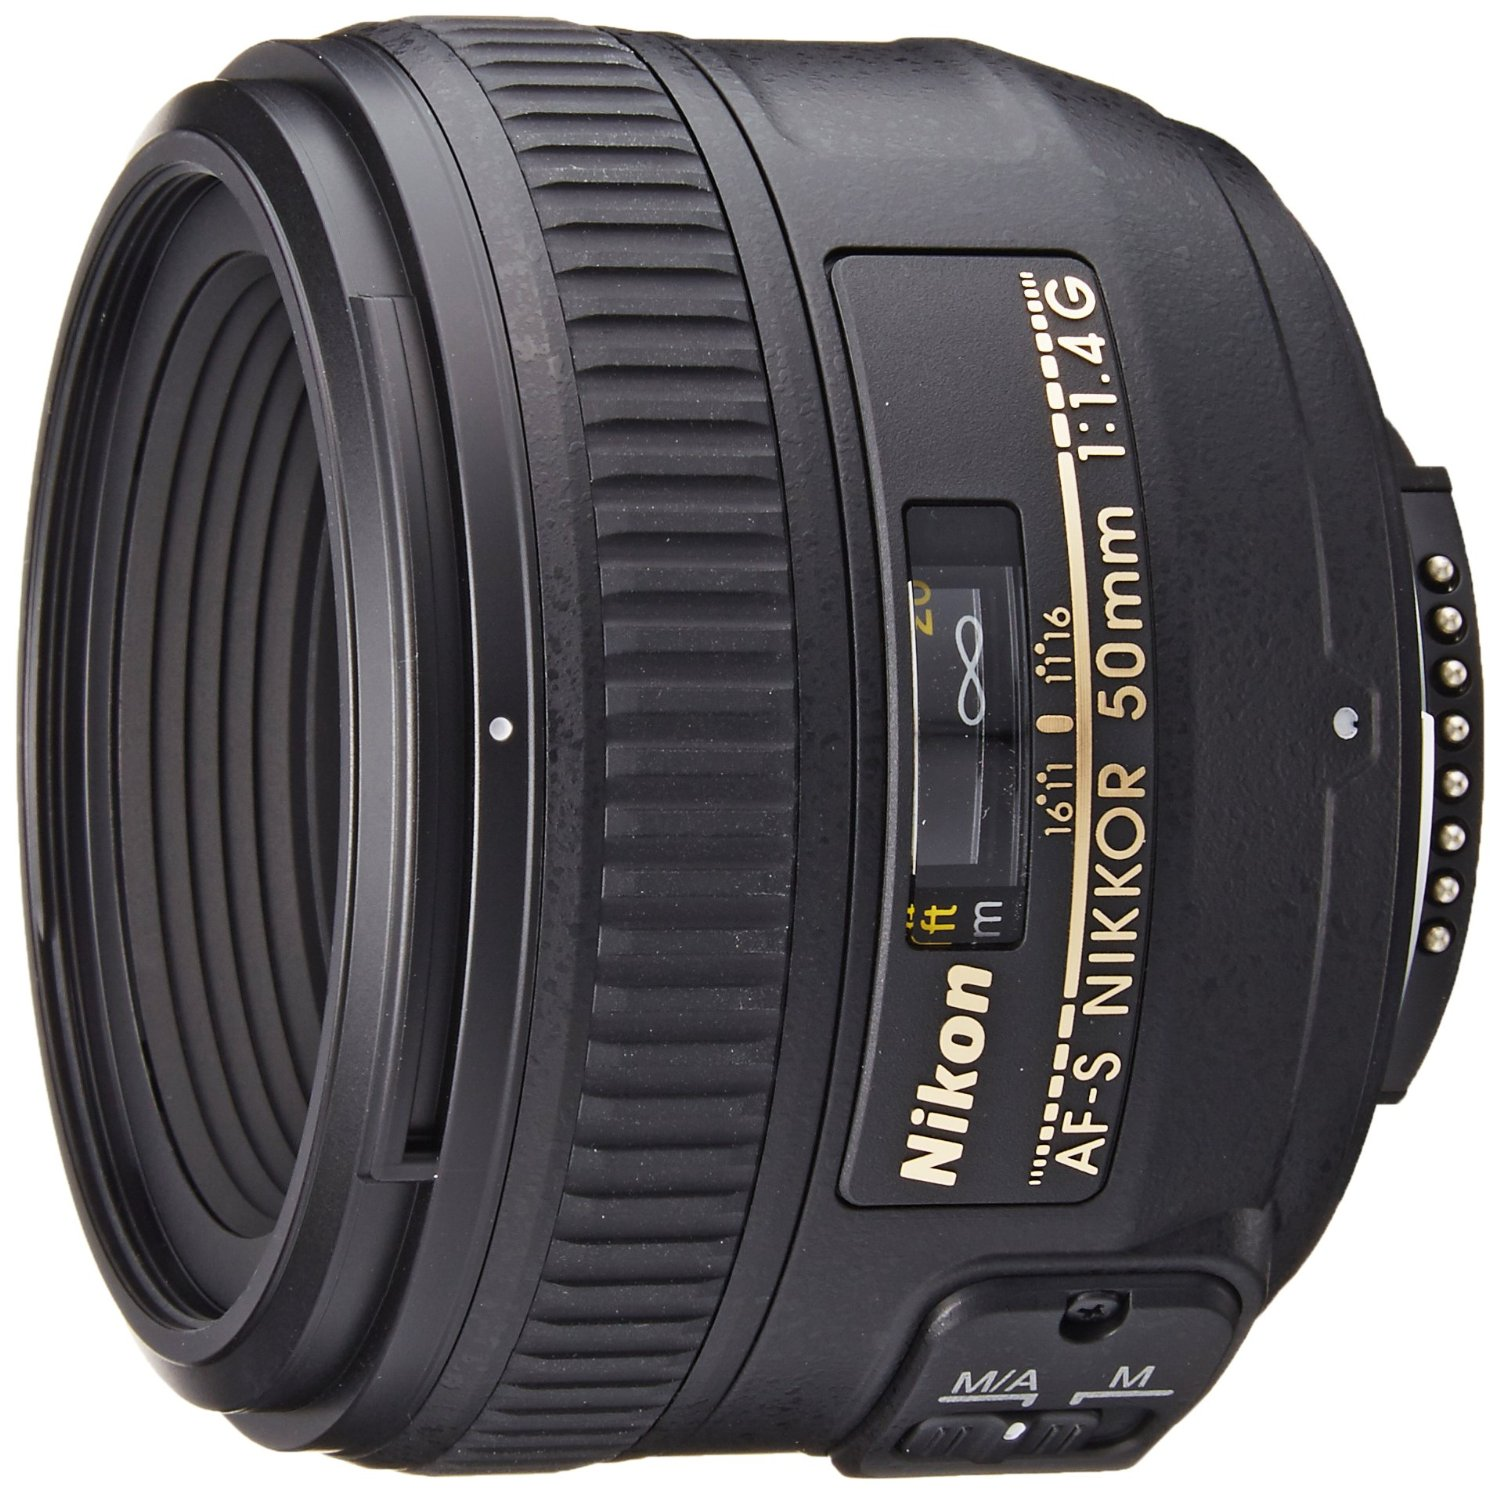 50mm Lens - Nikon AF-S FX NIKKOR 50mm f/1.4G Lens with Auto Focus for Nikon DSLR Cameras